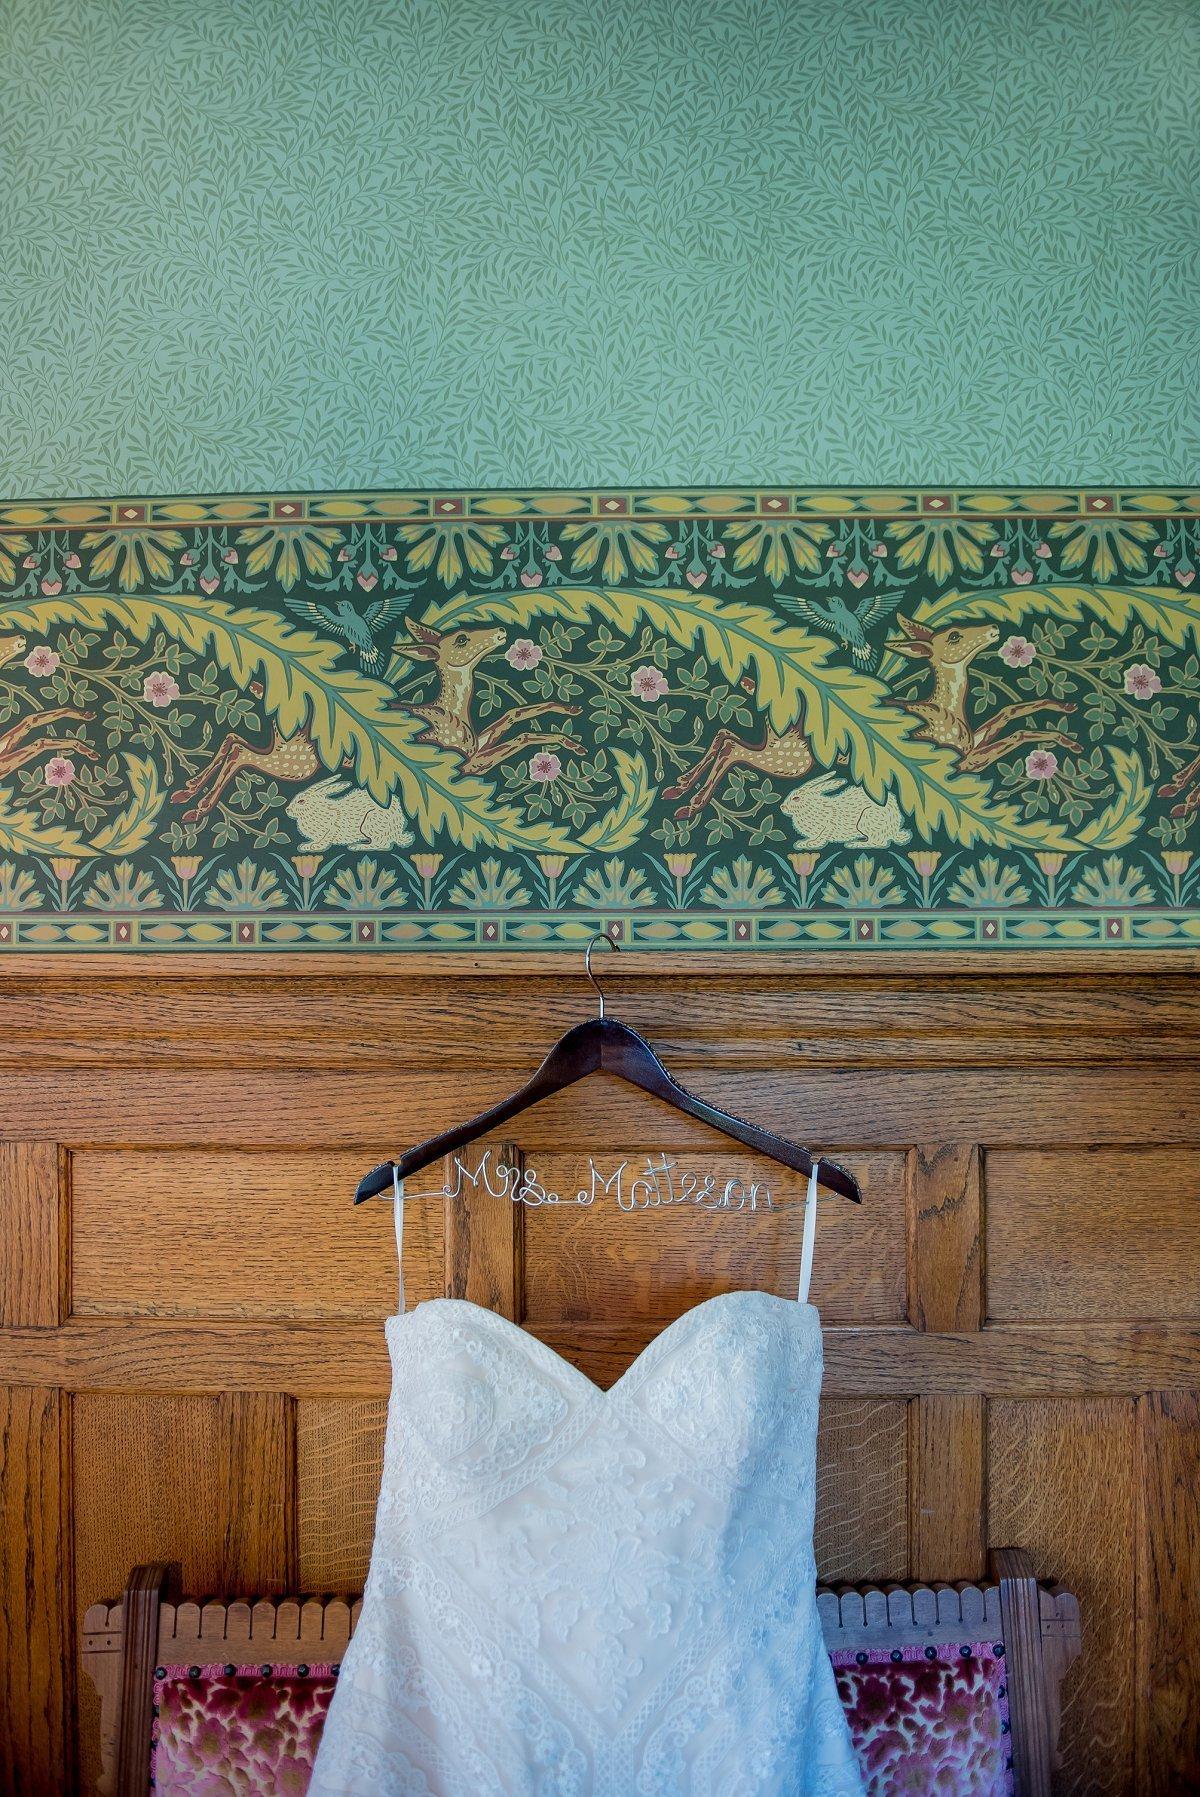 Wedding dresses and old fashioned wallpaper, boho vintage wedding vibes. Green and pink. KrisKandel.com